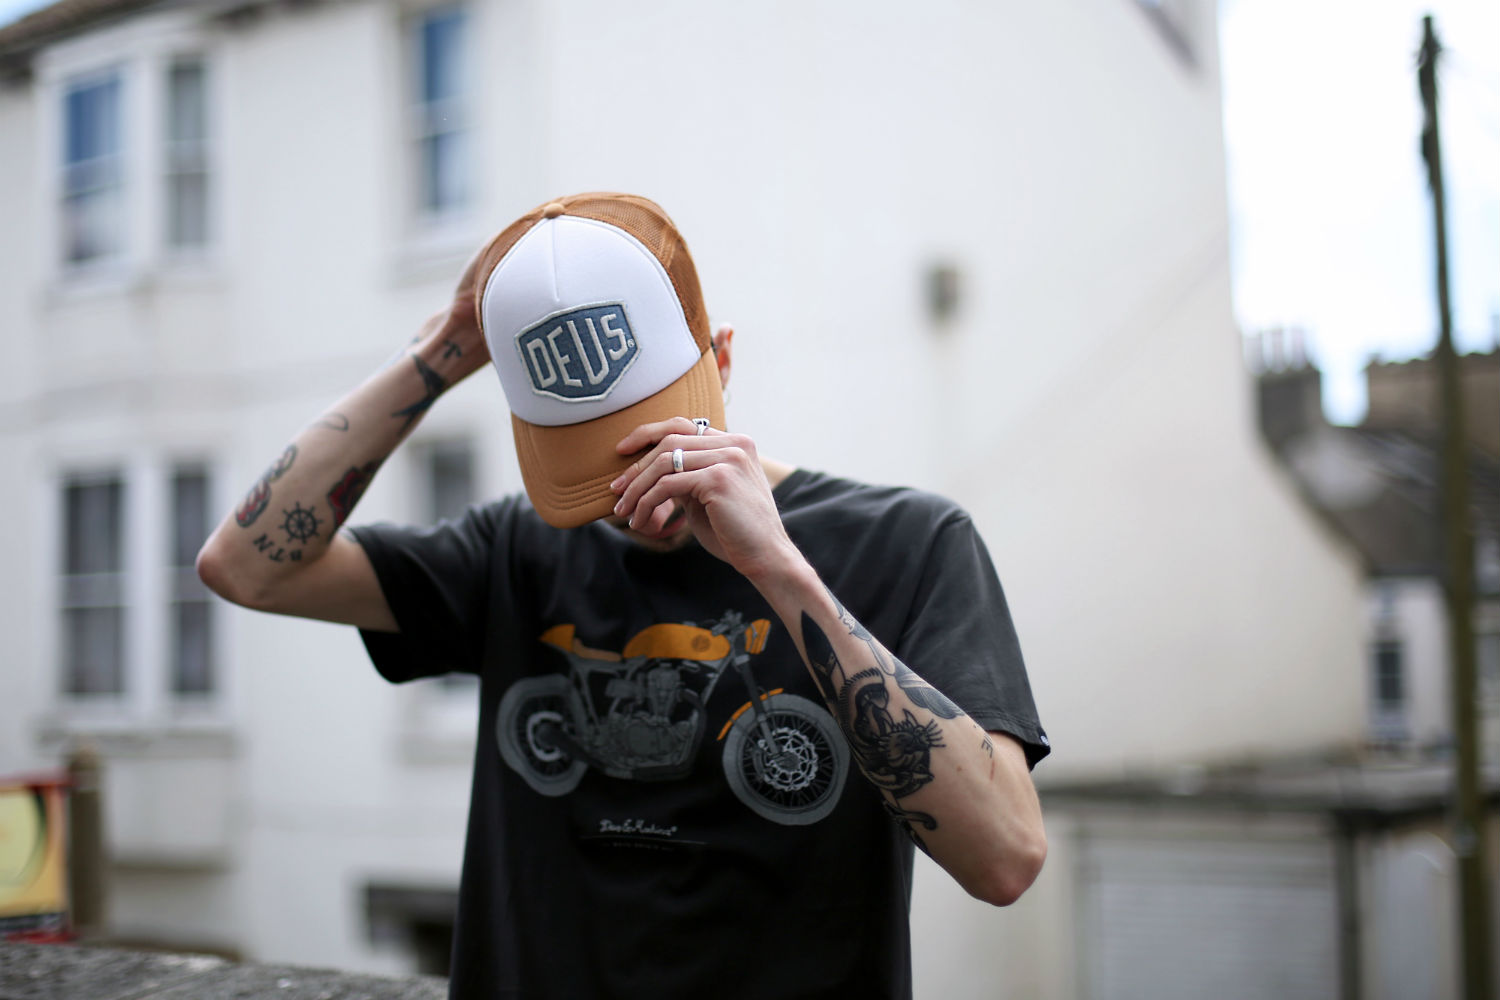 deus ex machina aw15 lookbook by urban industry